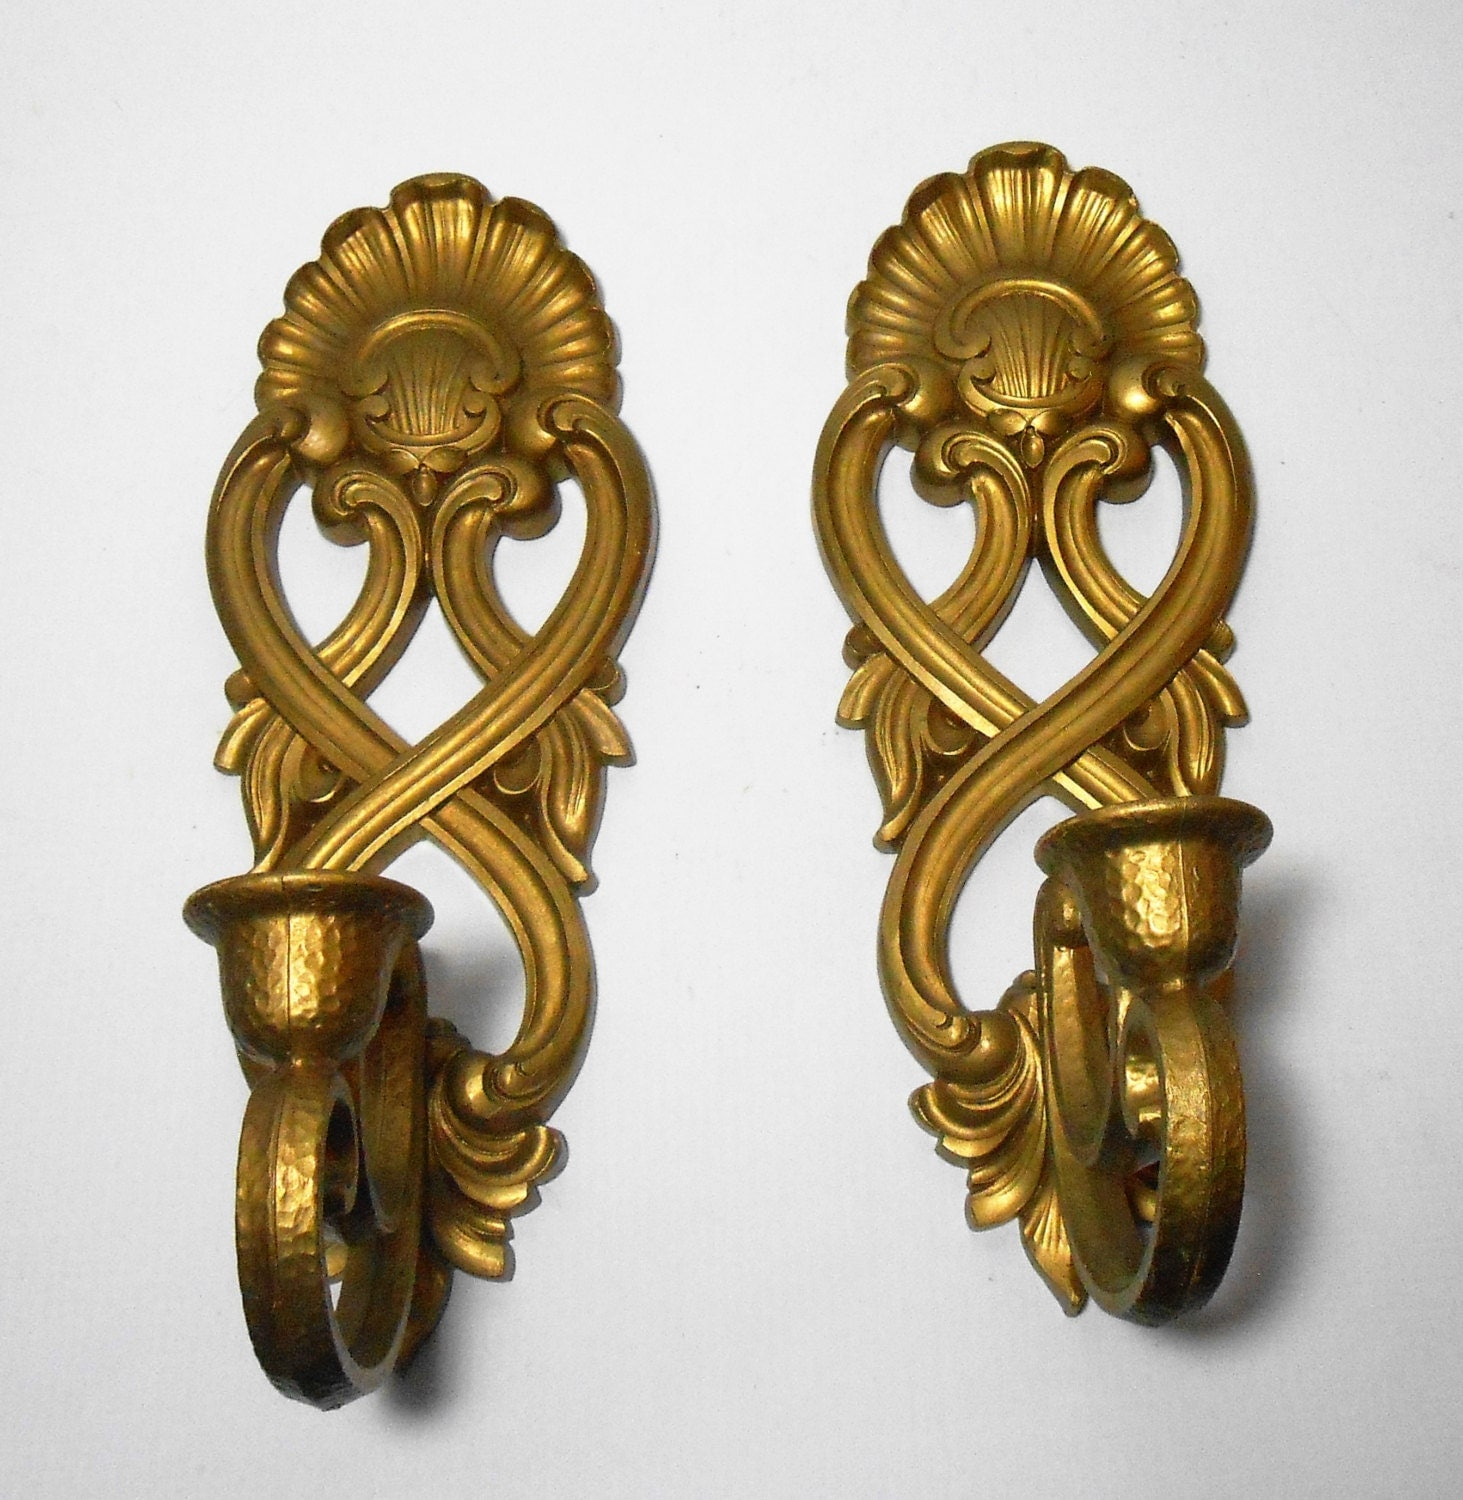 Wall Sconces Gold : Vintage Candle Holders Sconces Gold Ornate Wall Sconce